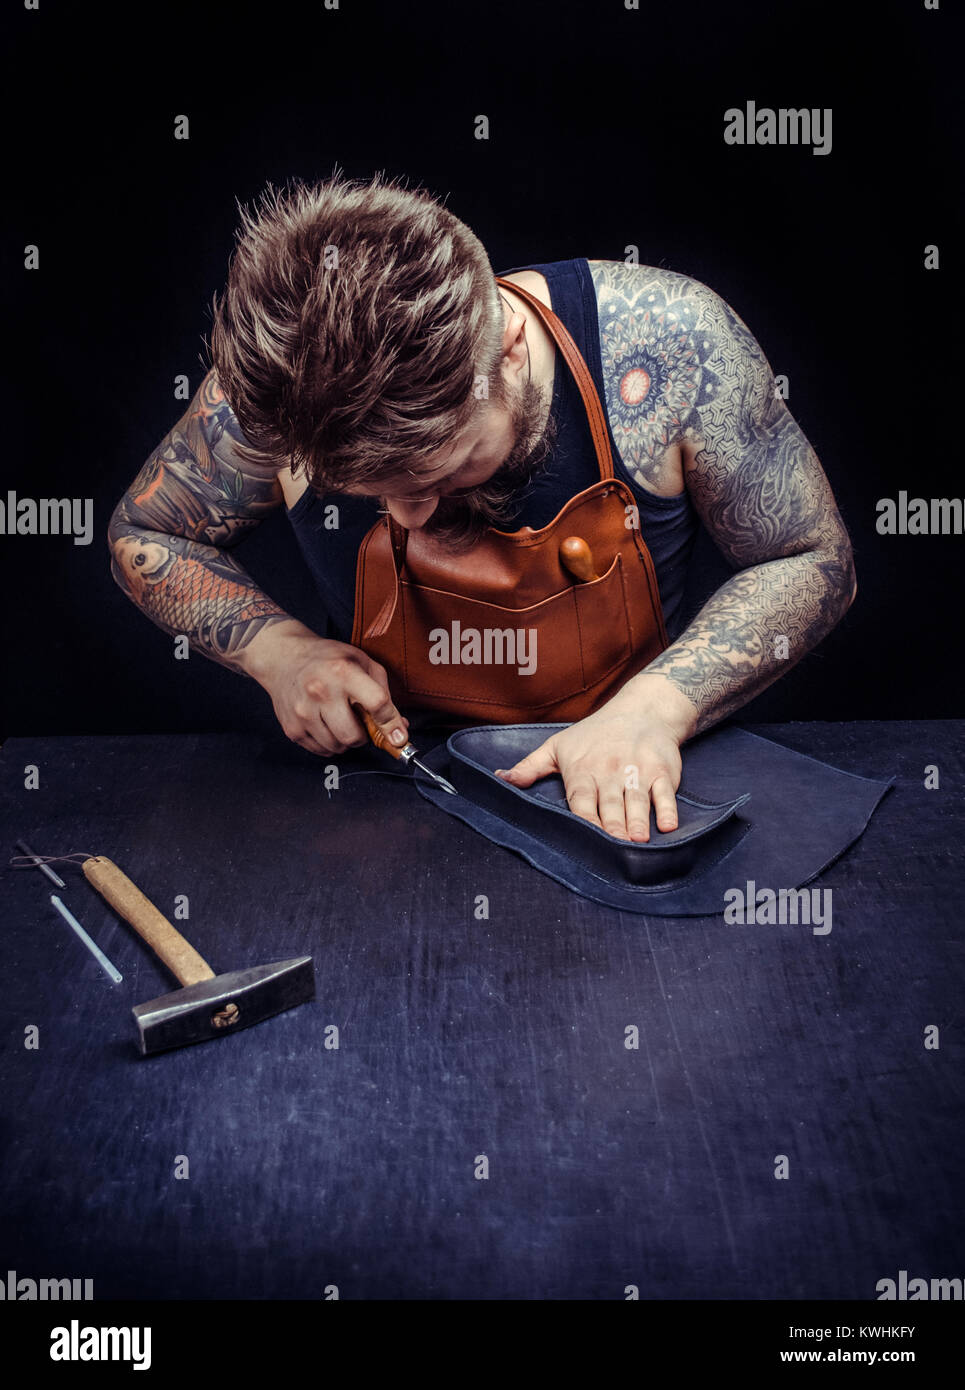 Leather Artist producing a good product at his place of work - Stock Image